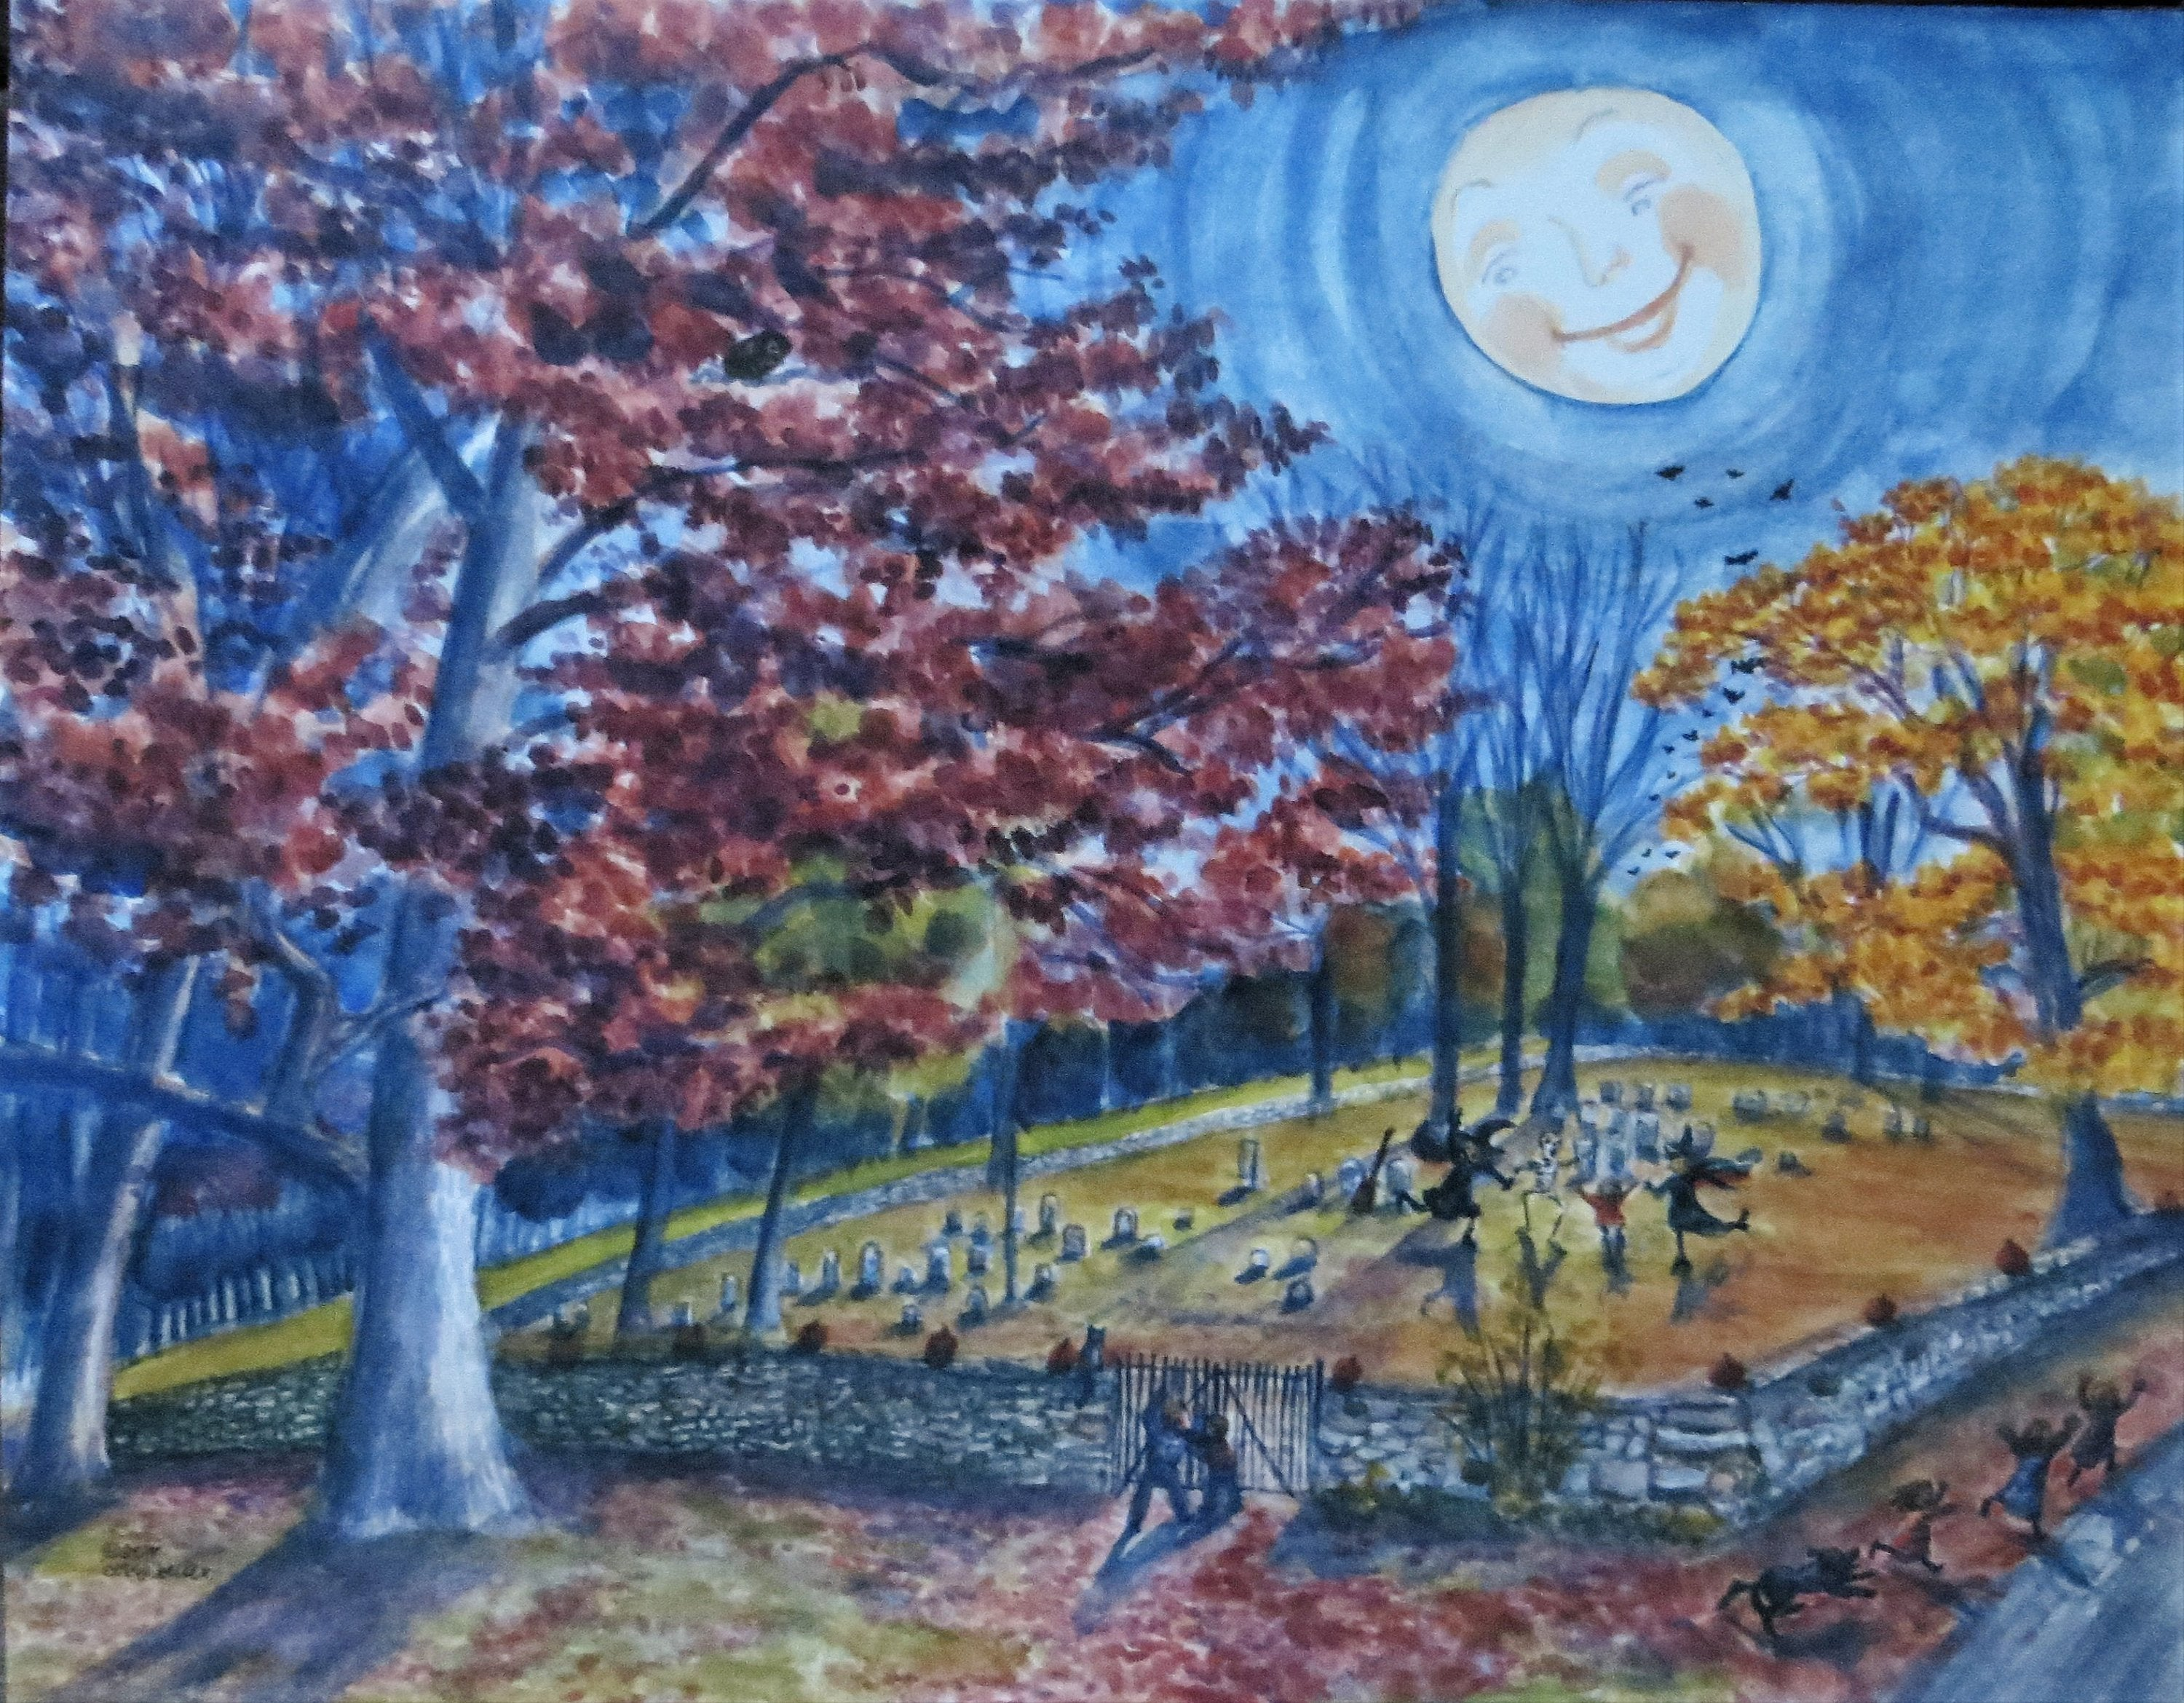 Graveyard, Spooky graveyard, bobbi becker, Witches, Full Moon night Watercolor print Cemetery print